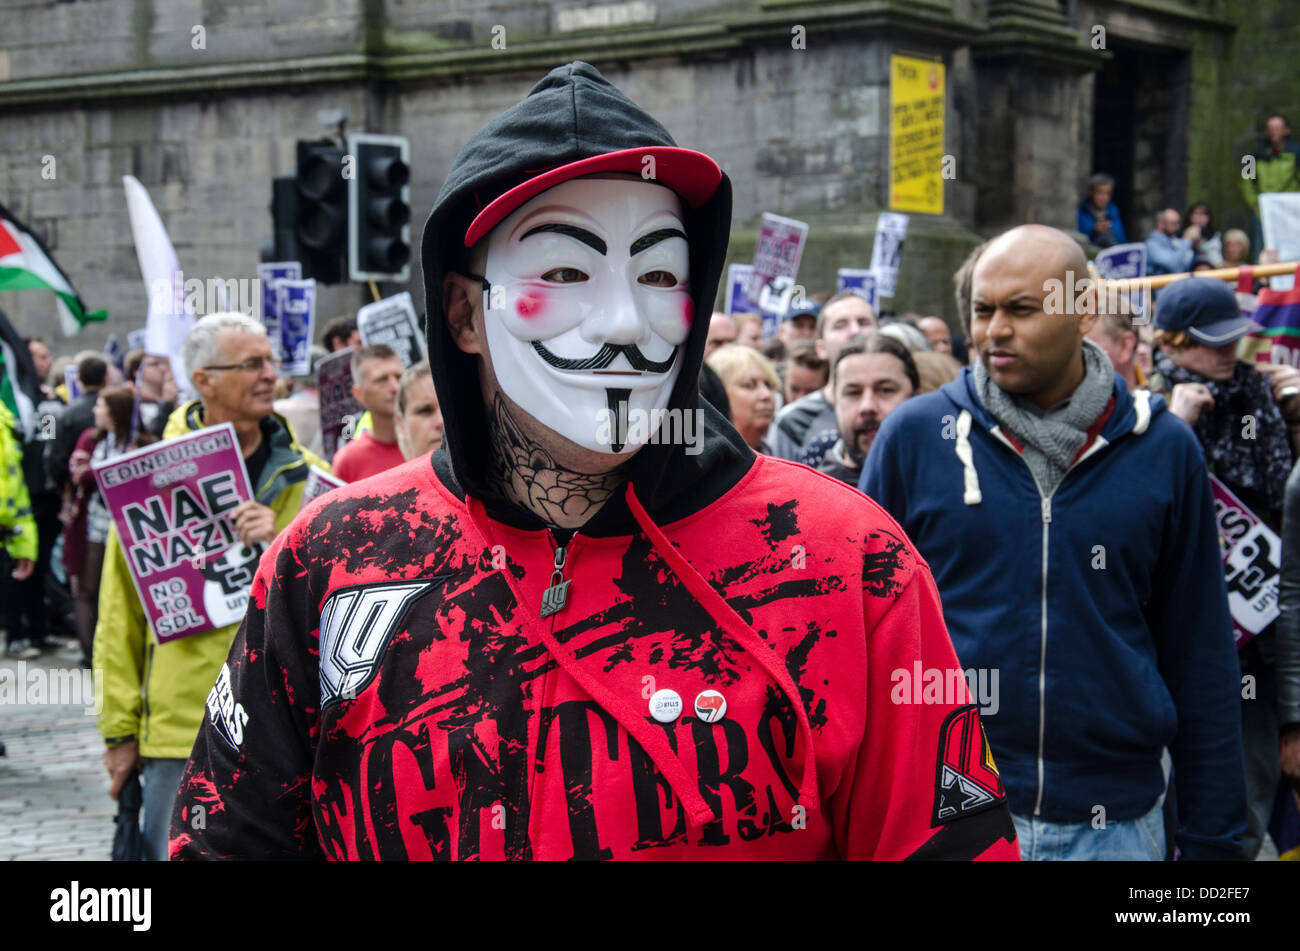 Antifaschistischer Demonstrant mit einer anonymen Maske in Edinburghs Altstadt. Stockfoto